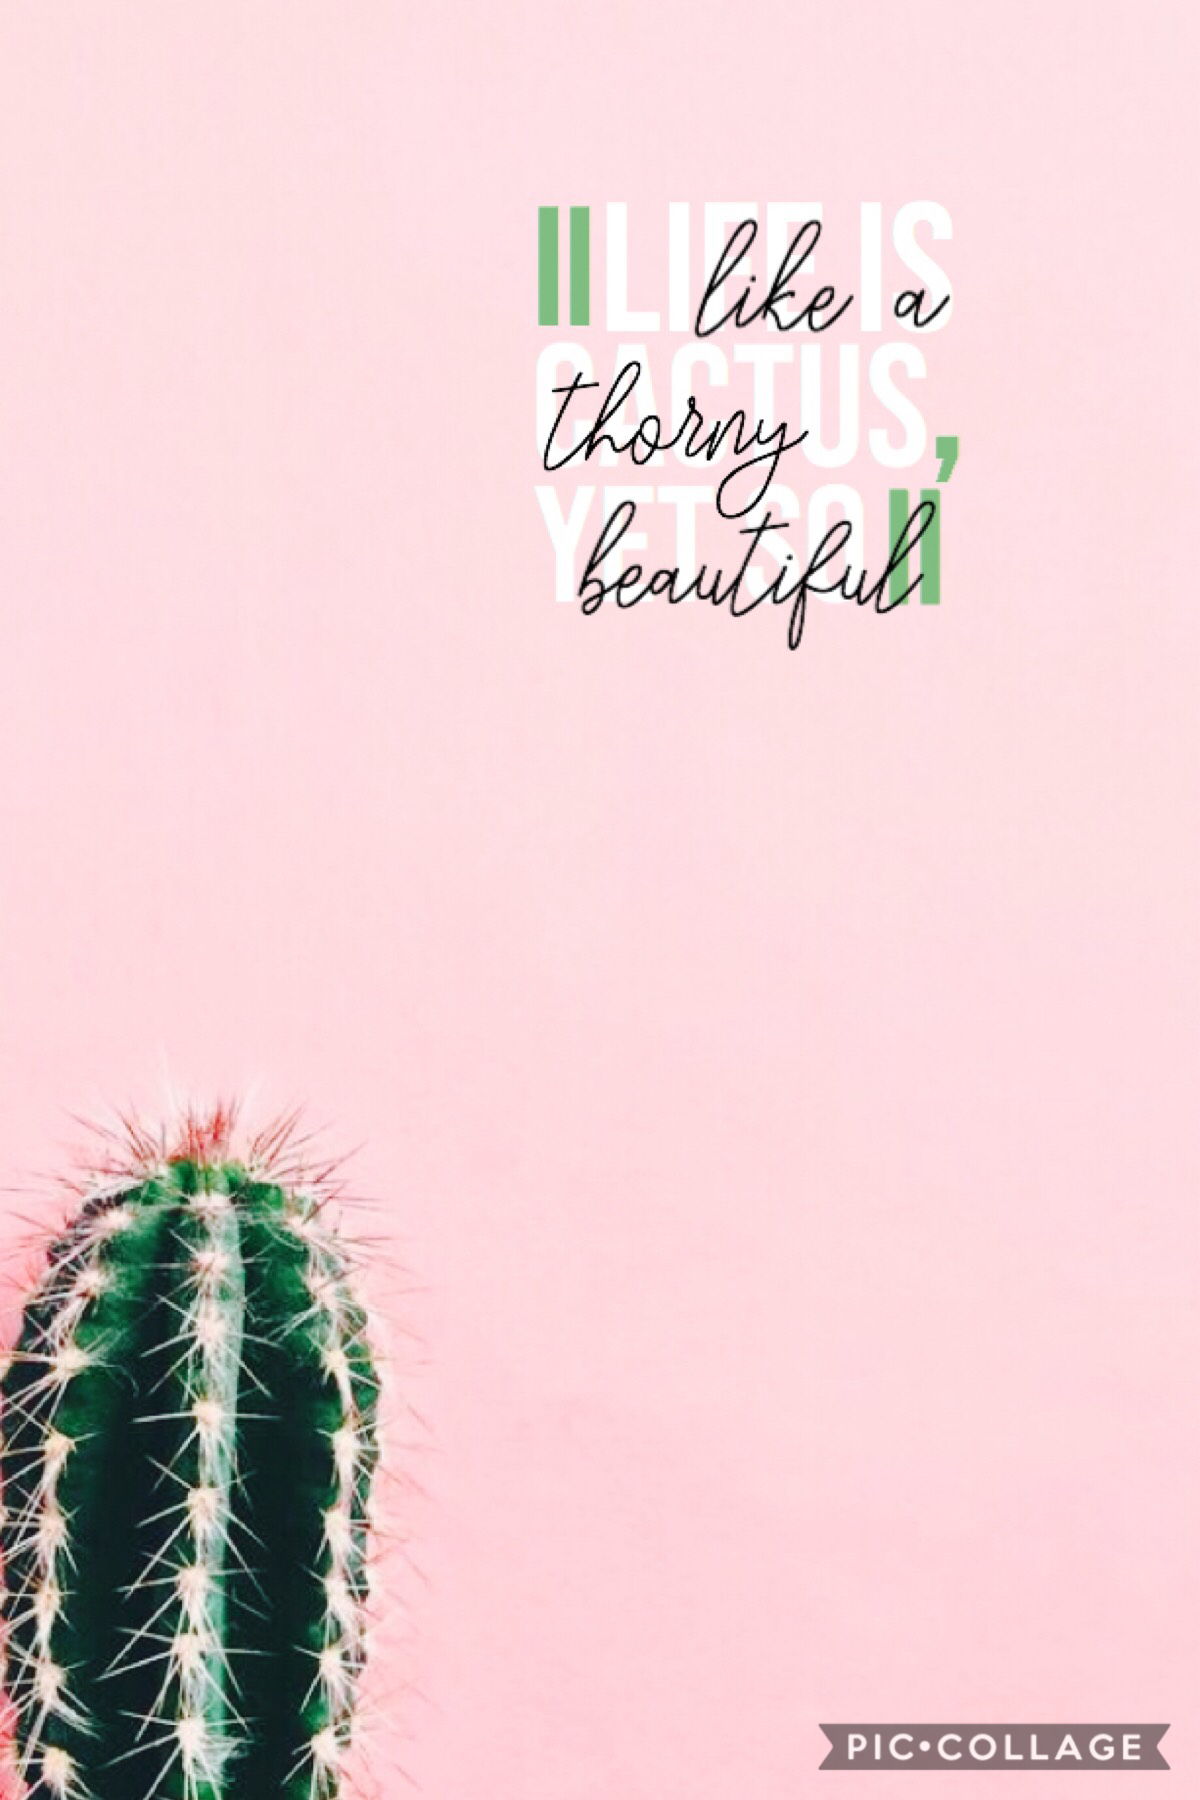 Tap🌵💕  A collage for you guys😂 thinking of trying a new style idk? A cactus is just an aggressive cucumber 🥒😂 I was almost going to use that quote💗💗